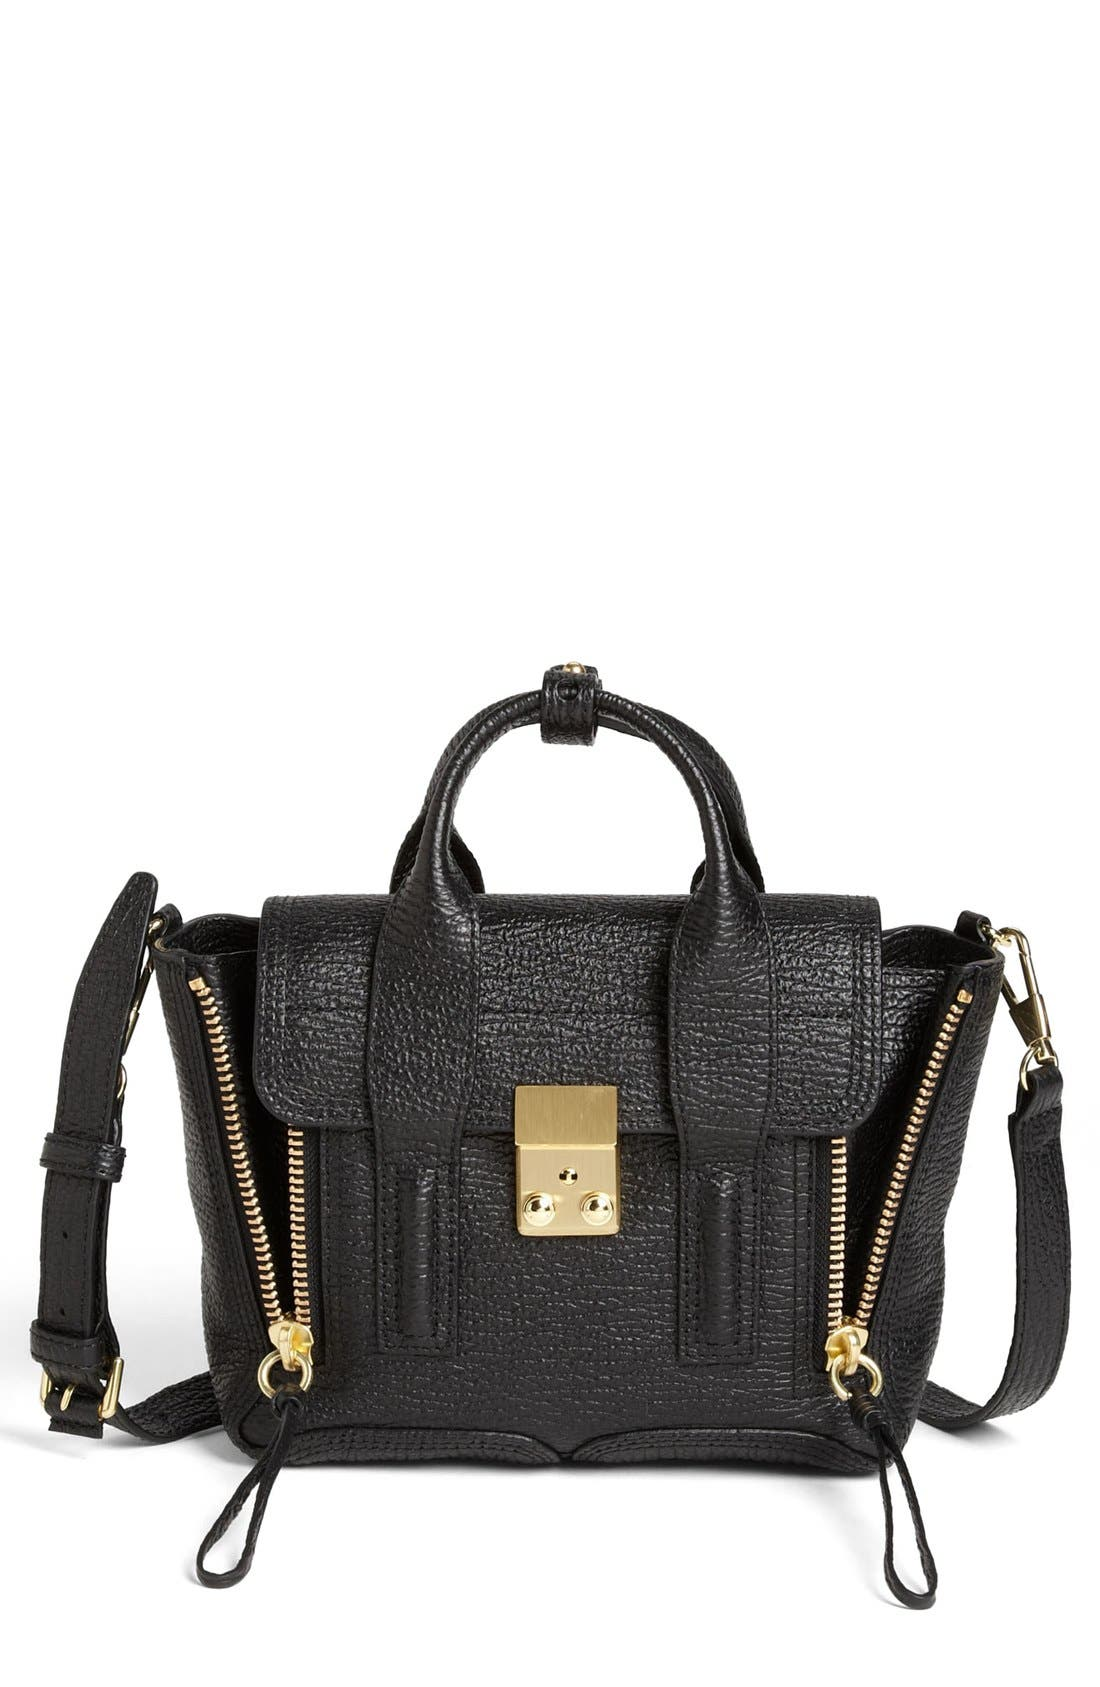 'Mini Pashli' Leather Satchel,                         Main,                         color, BLACK/ GOLD HDWR